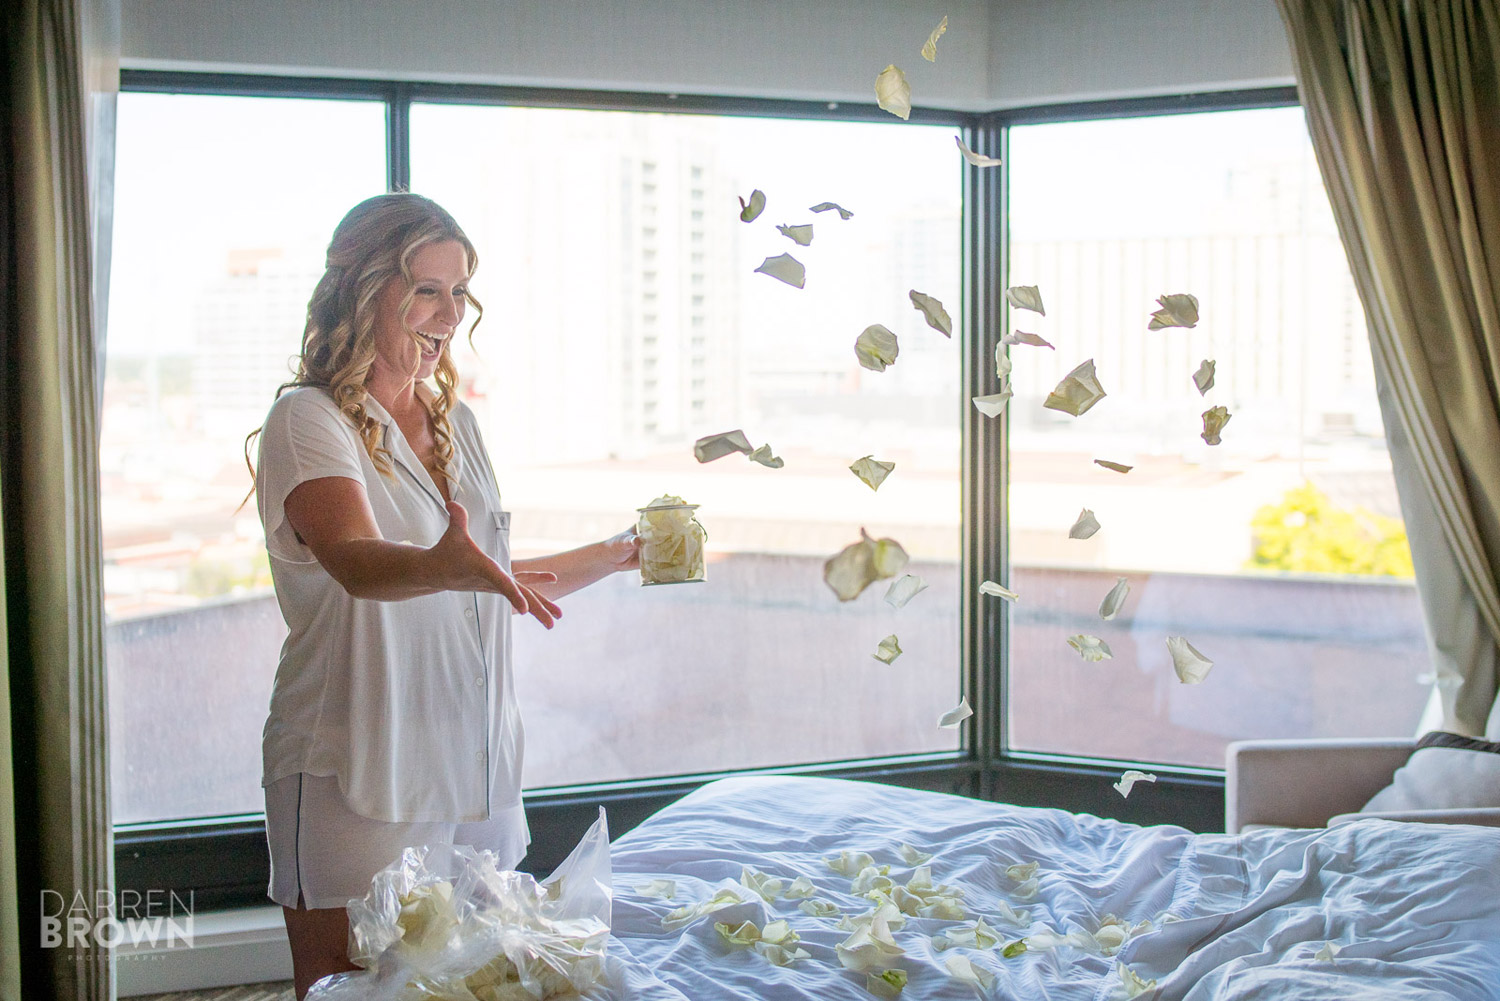 bride throwing flower petals on bed